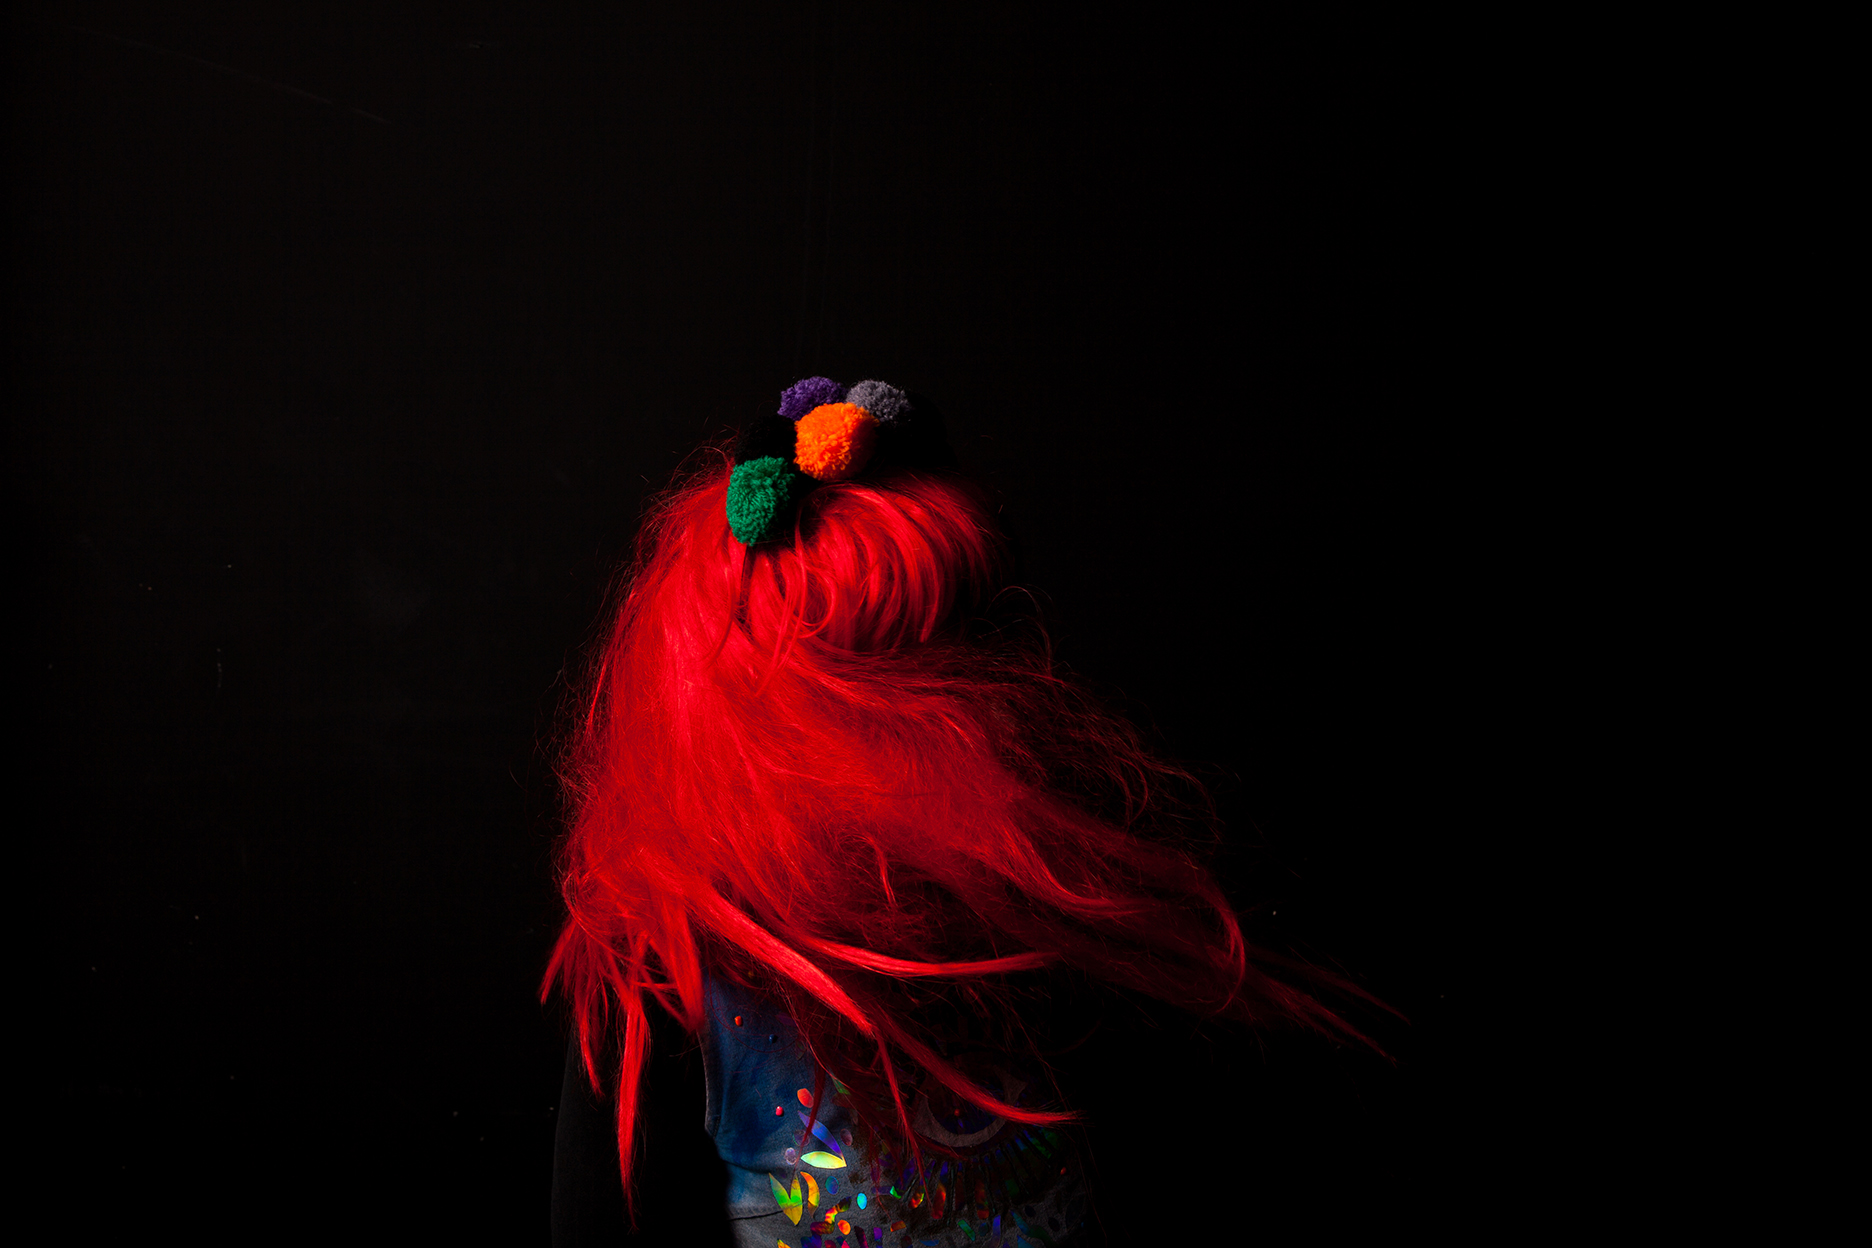 A black background, a body with bright red hair and a costume whirls